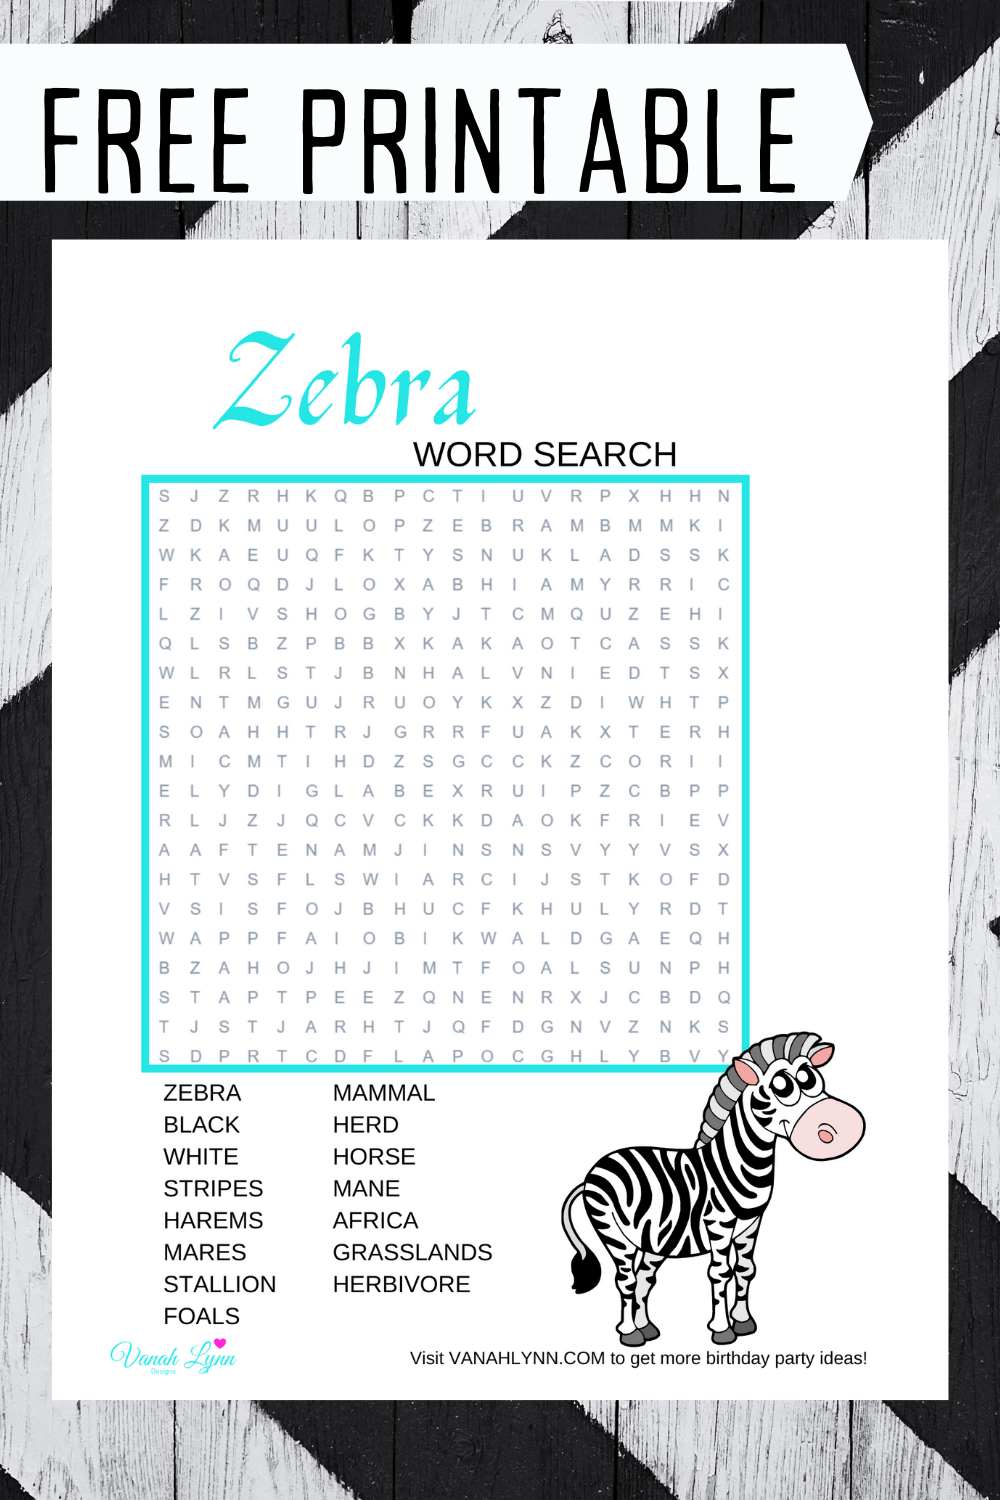 free printable zebra word find for a birthday party